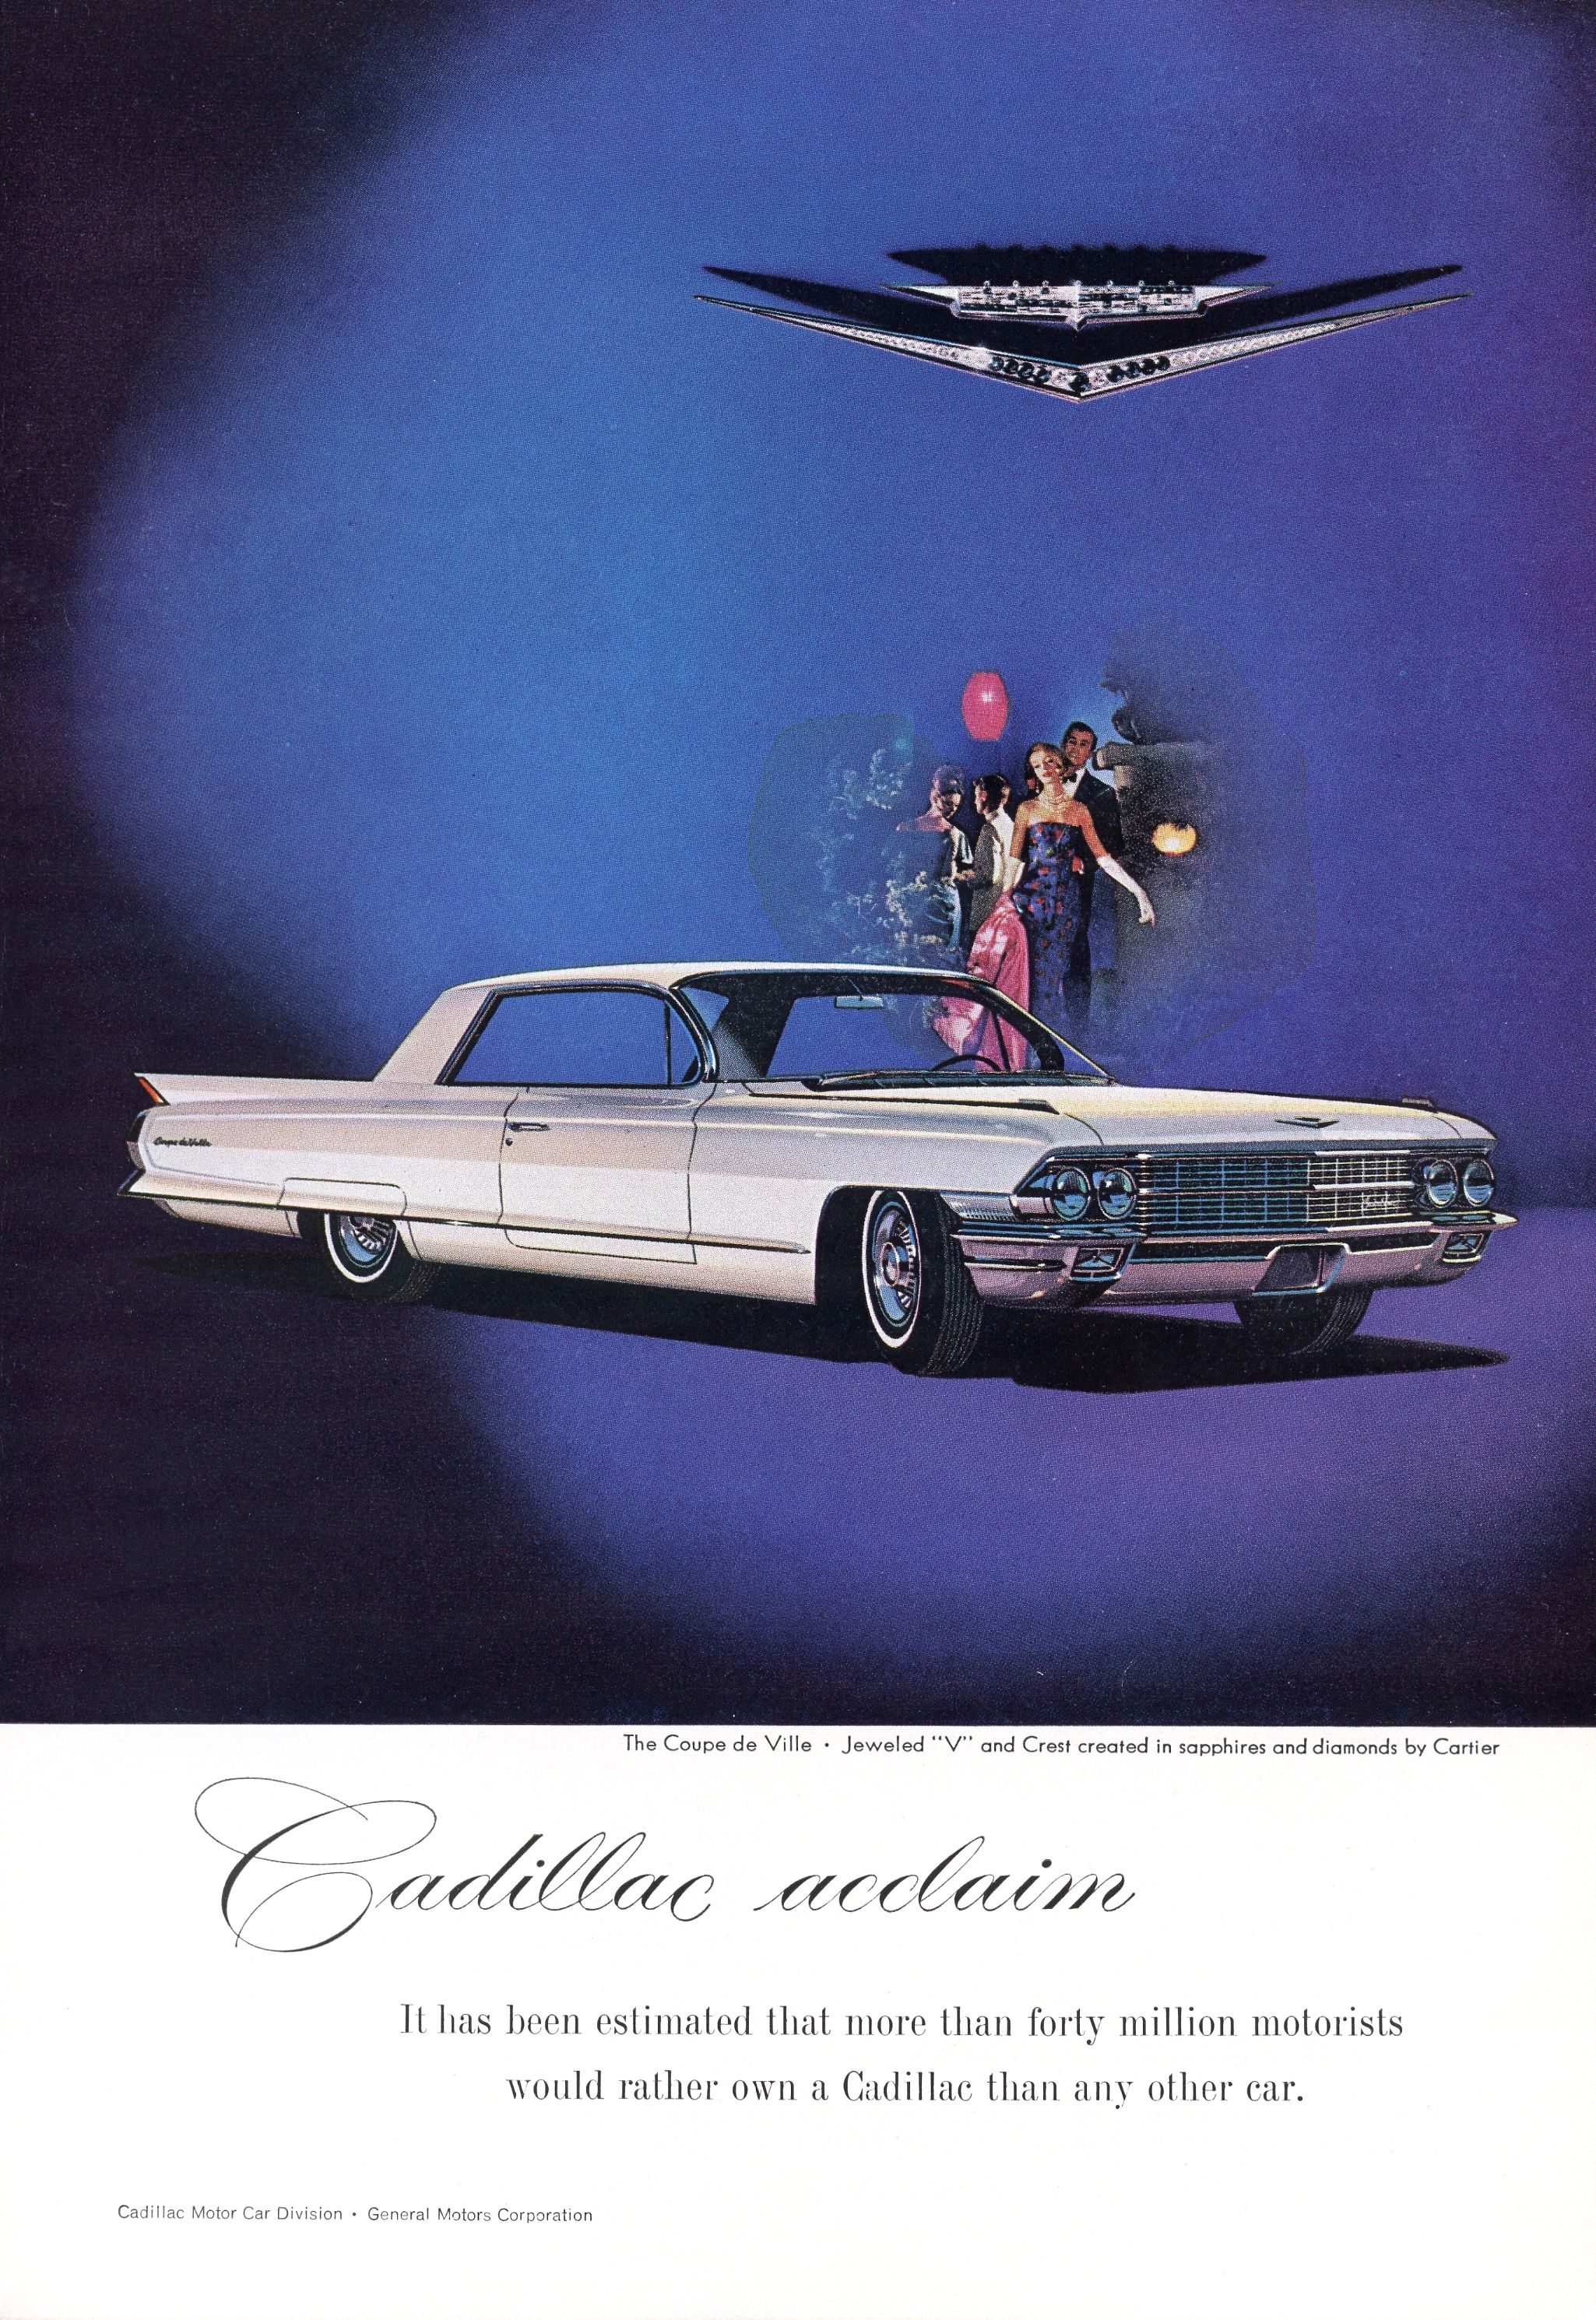 Cadillac The Classic Era Years History Rare Car Poster:/>